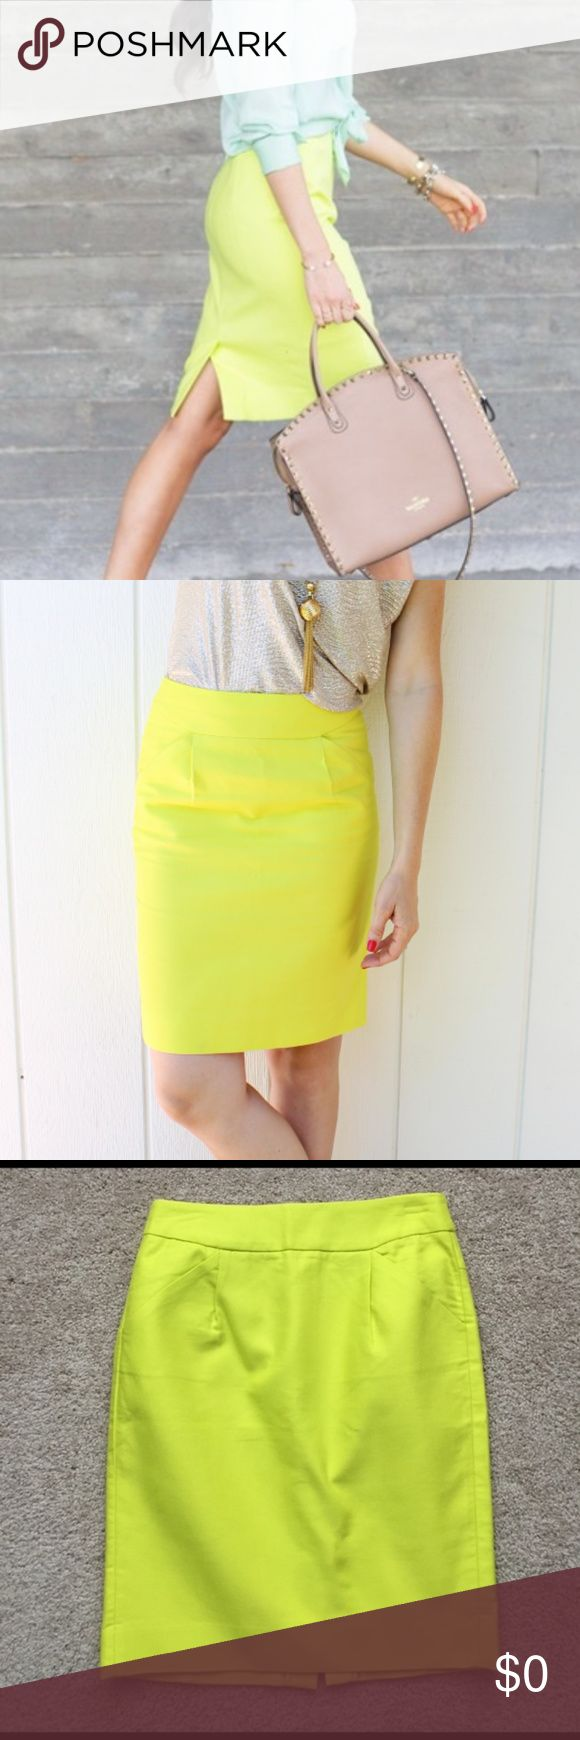 J CREW NWOT Neon Yellow 'The Pencil Skirt' J CREW Neon Yellow 'The Pencil Skirt'.  With Pockets.  NEVER WORN.  Size: 12 RSP: $110 J. Crew Skirts Pencil